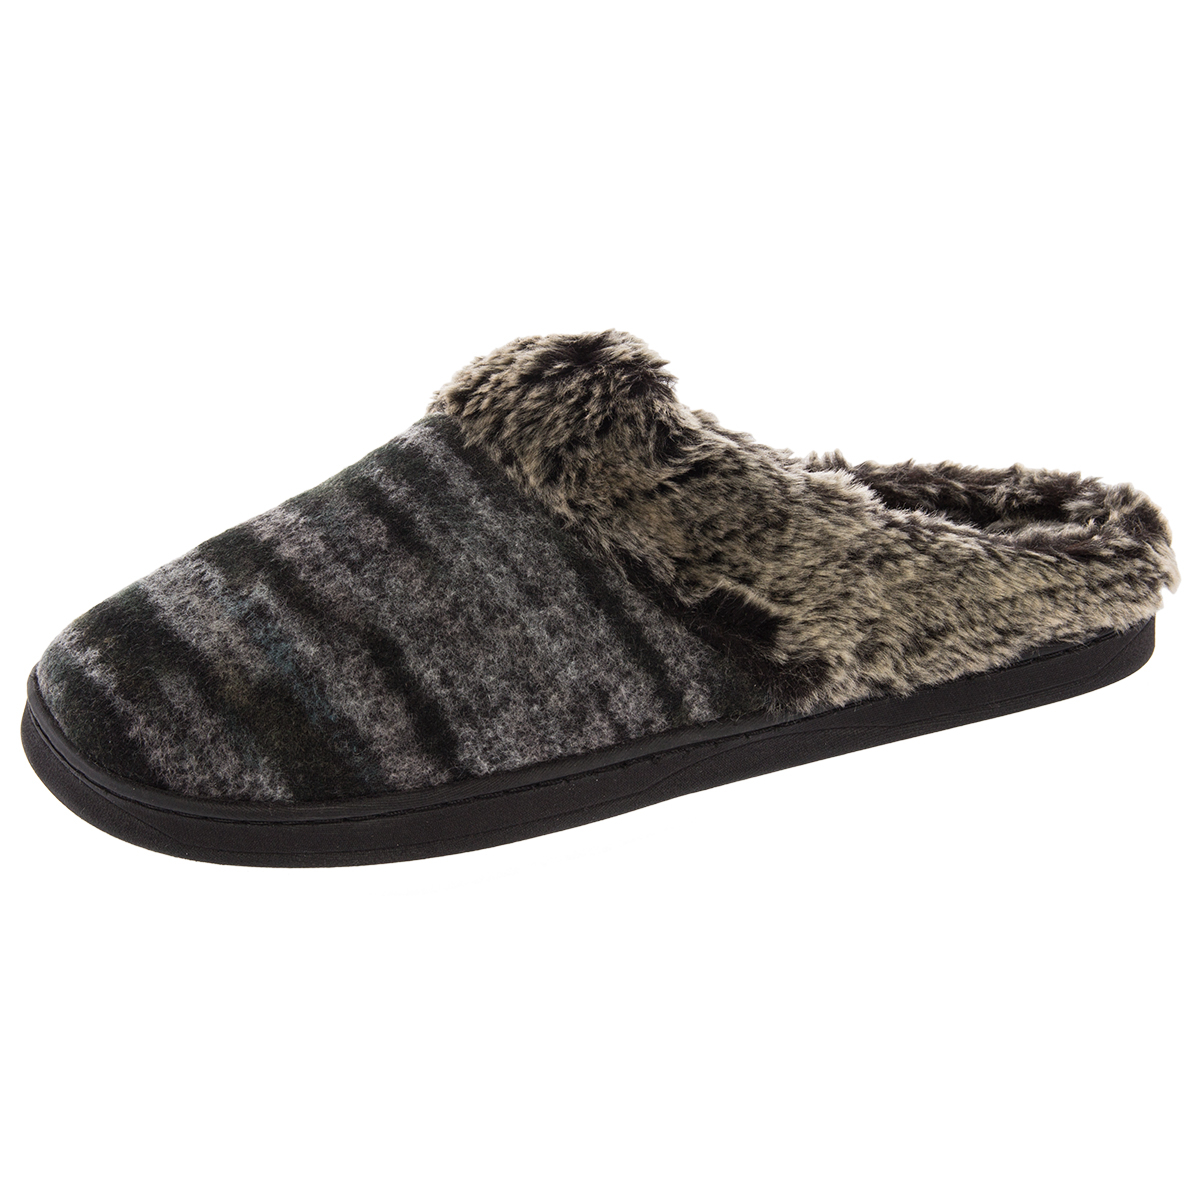 Aerosoles-Women-s-Cushioned-House-Slippers-Wool-Mule-Clogs-Indoor-Outdoor-Shoes thumbnail 12